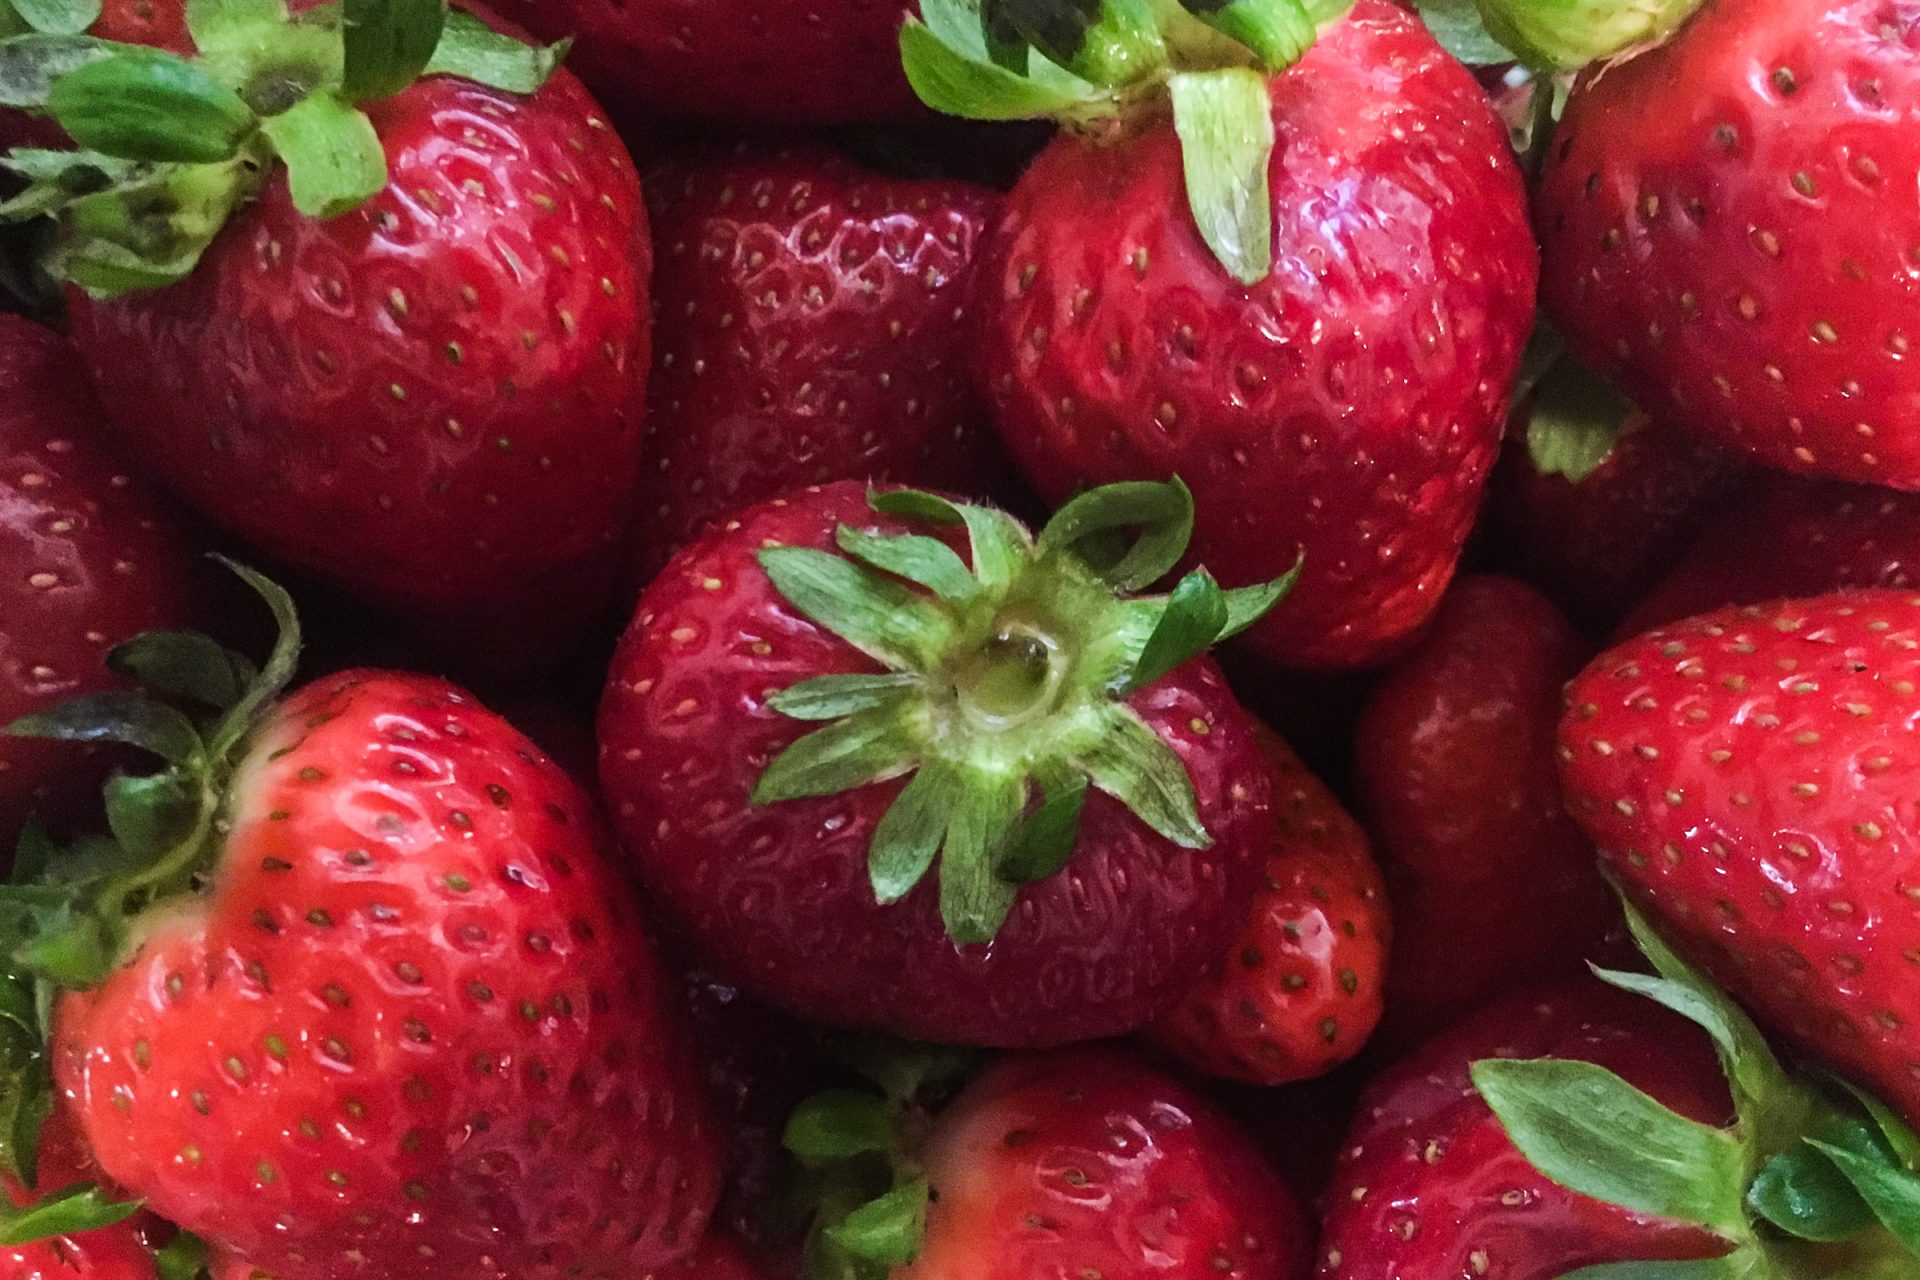 Close Up of Red Strawberries